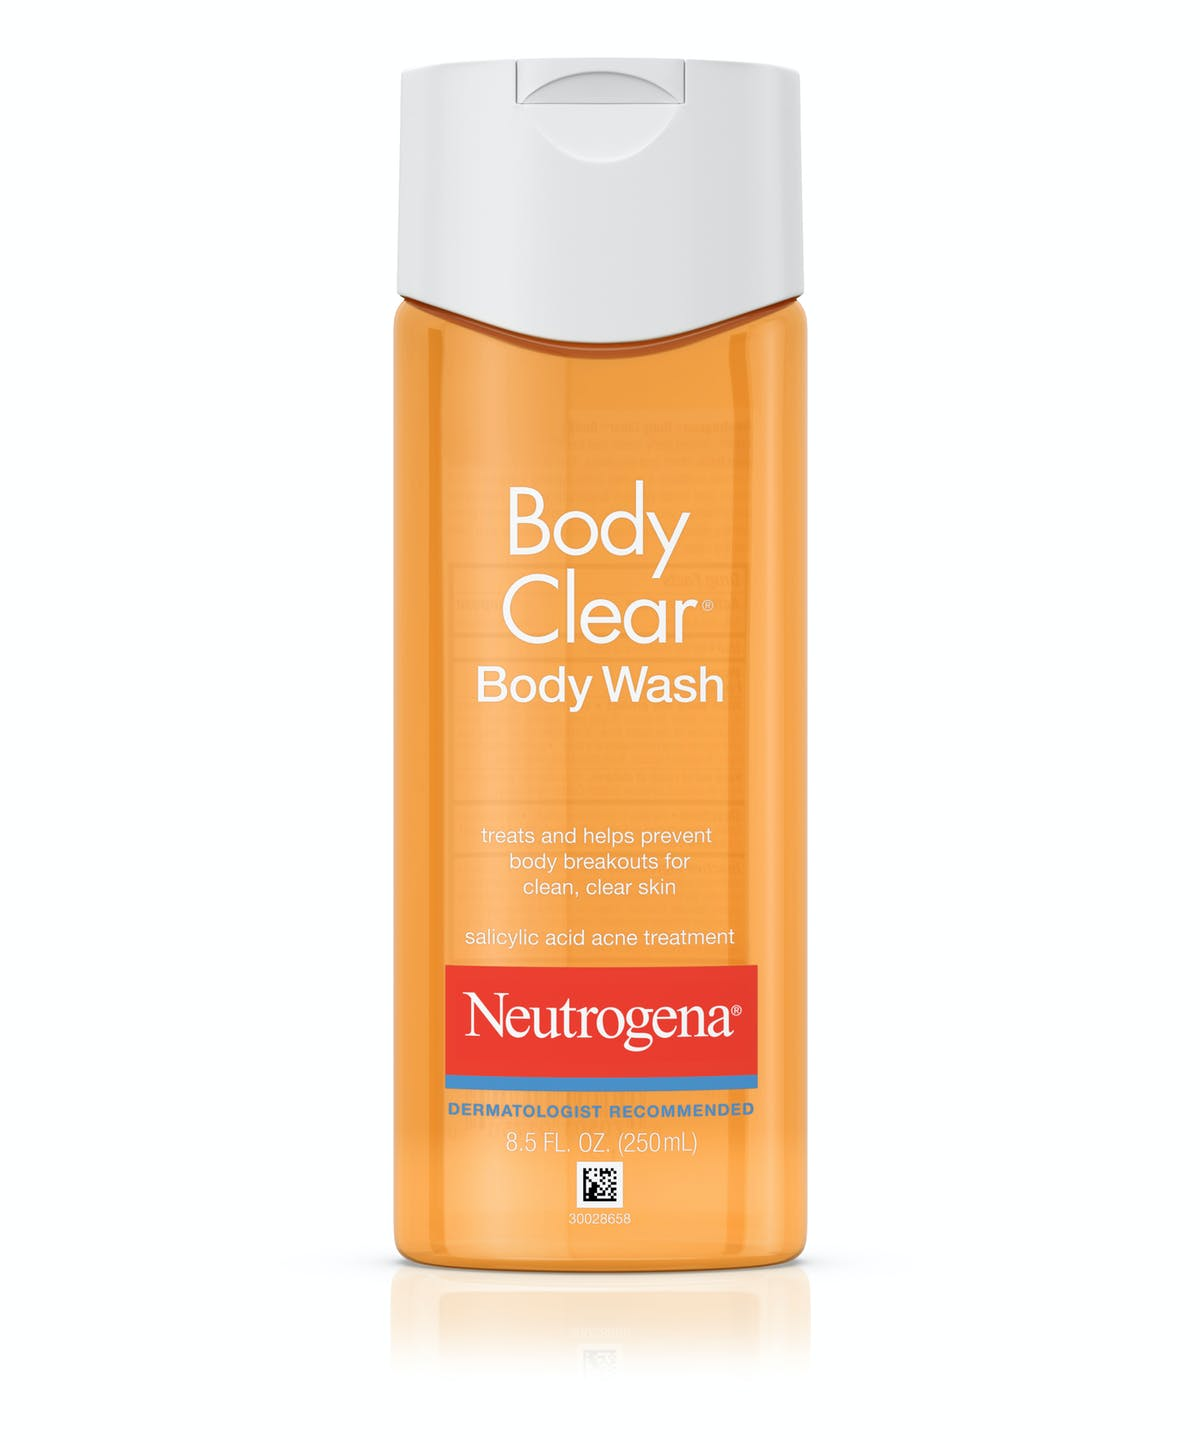 Body Clear Body Wash Neutrogena